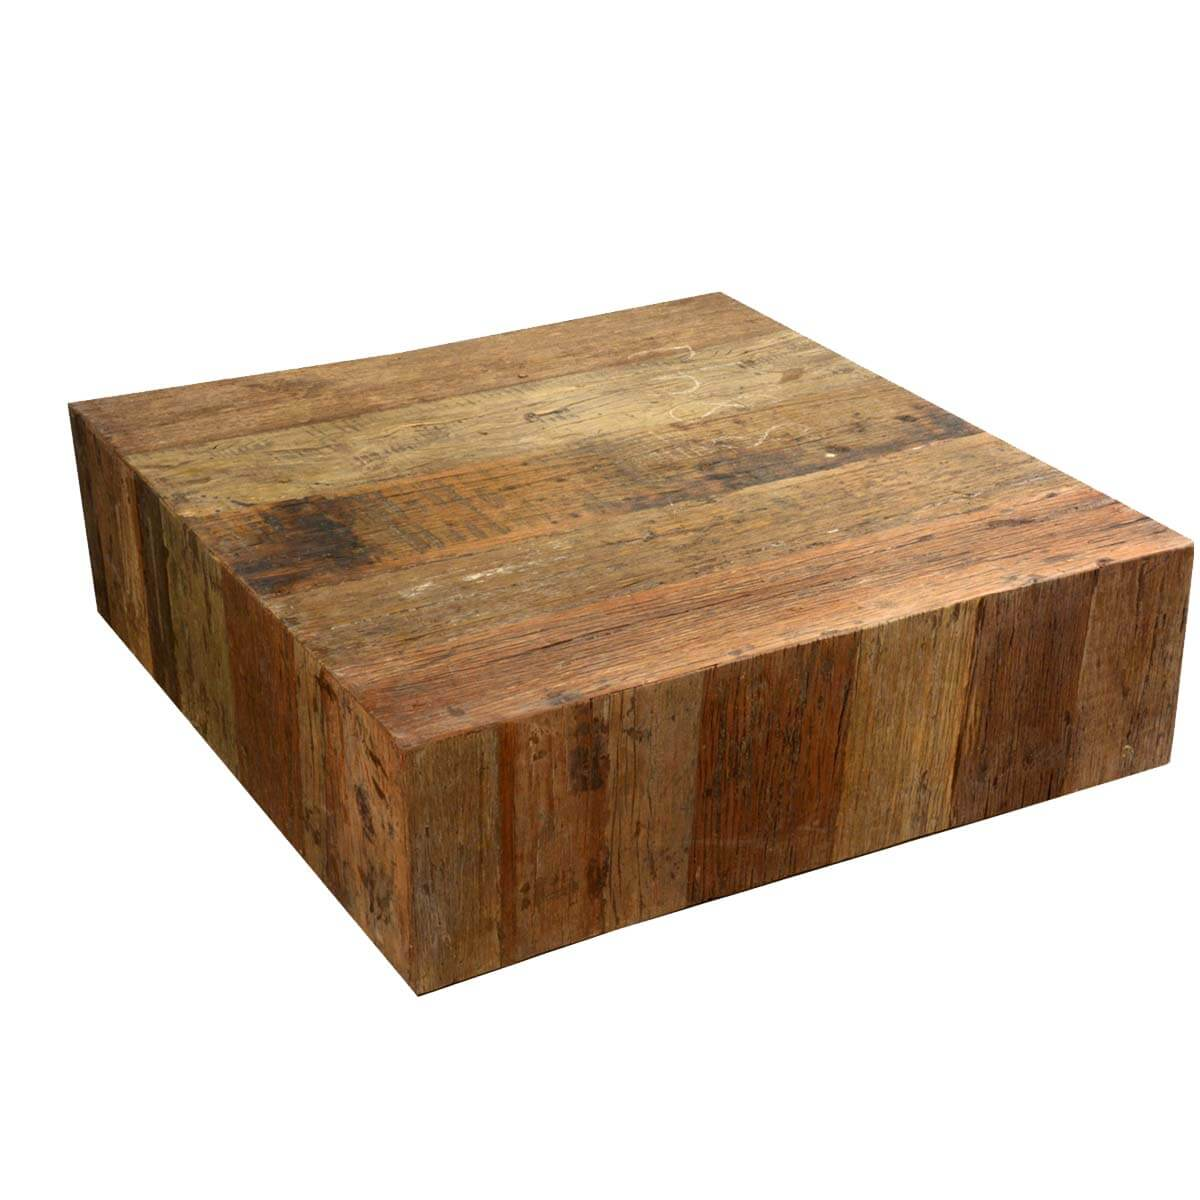 Appalachian rustic railroad wood square box style coffee table Wood square coffee tables